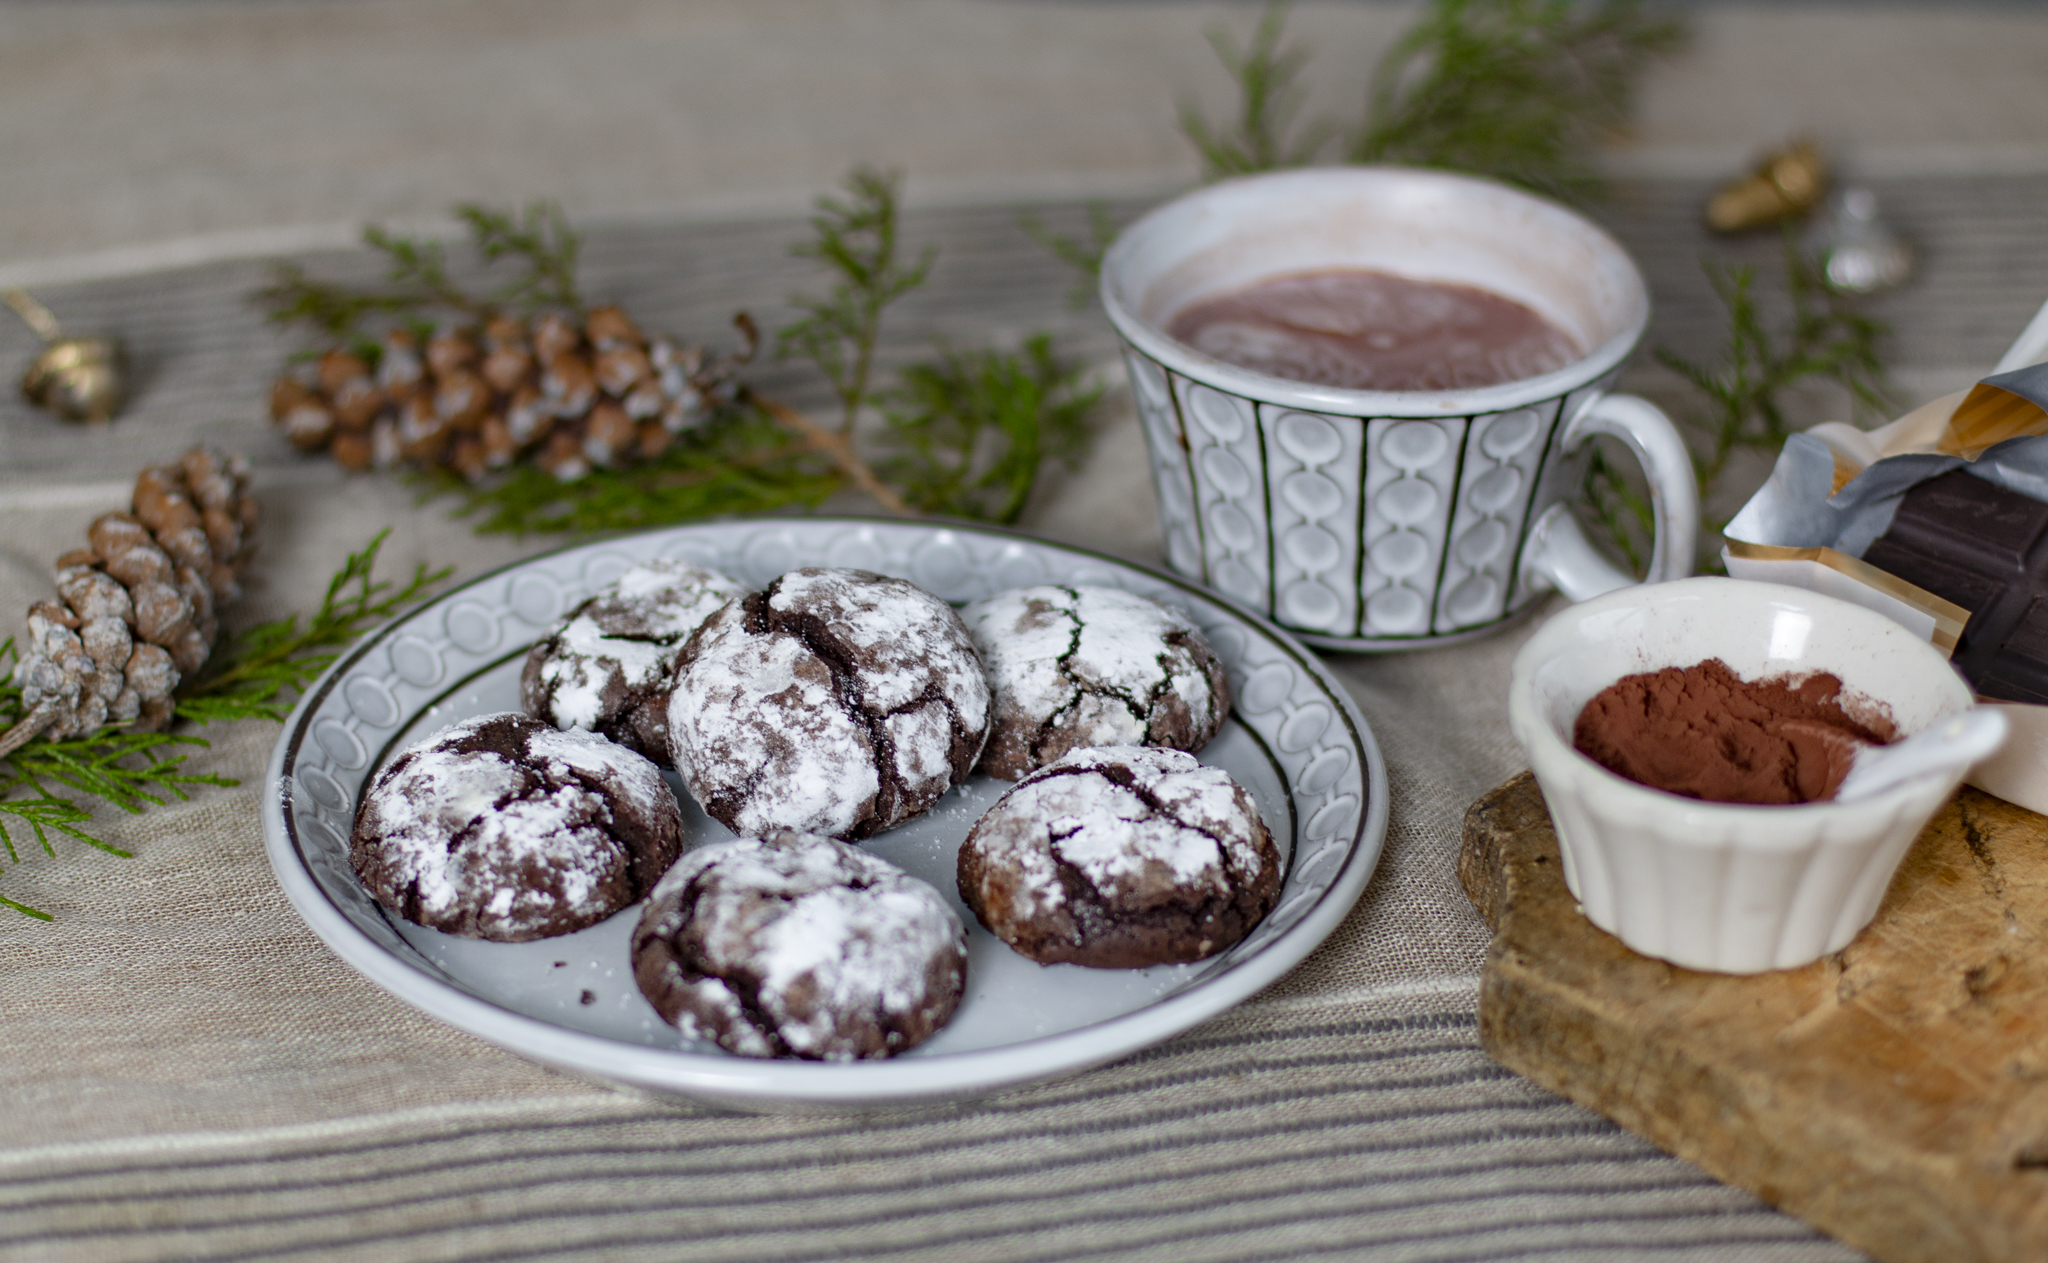 Flourless Chocolate Crackle Cookies